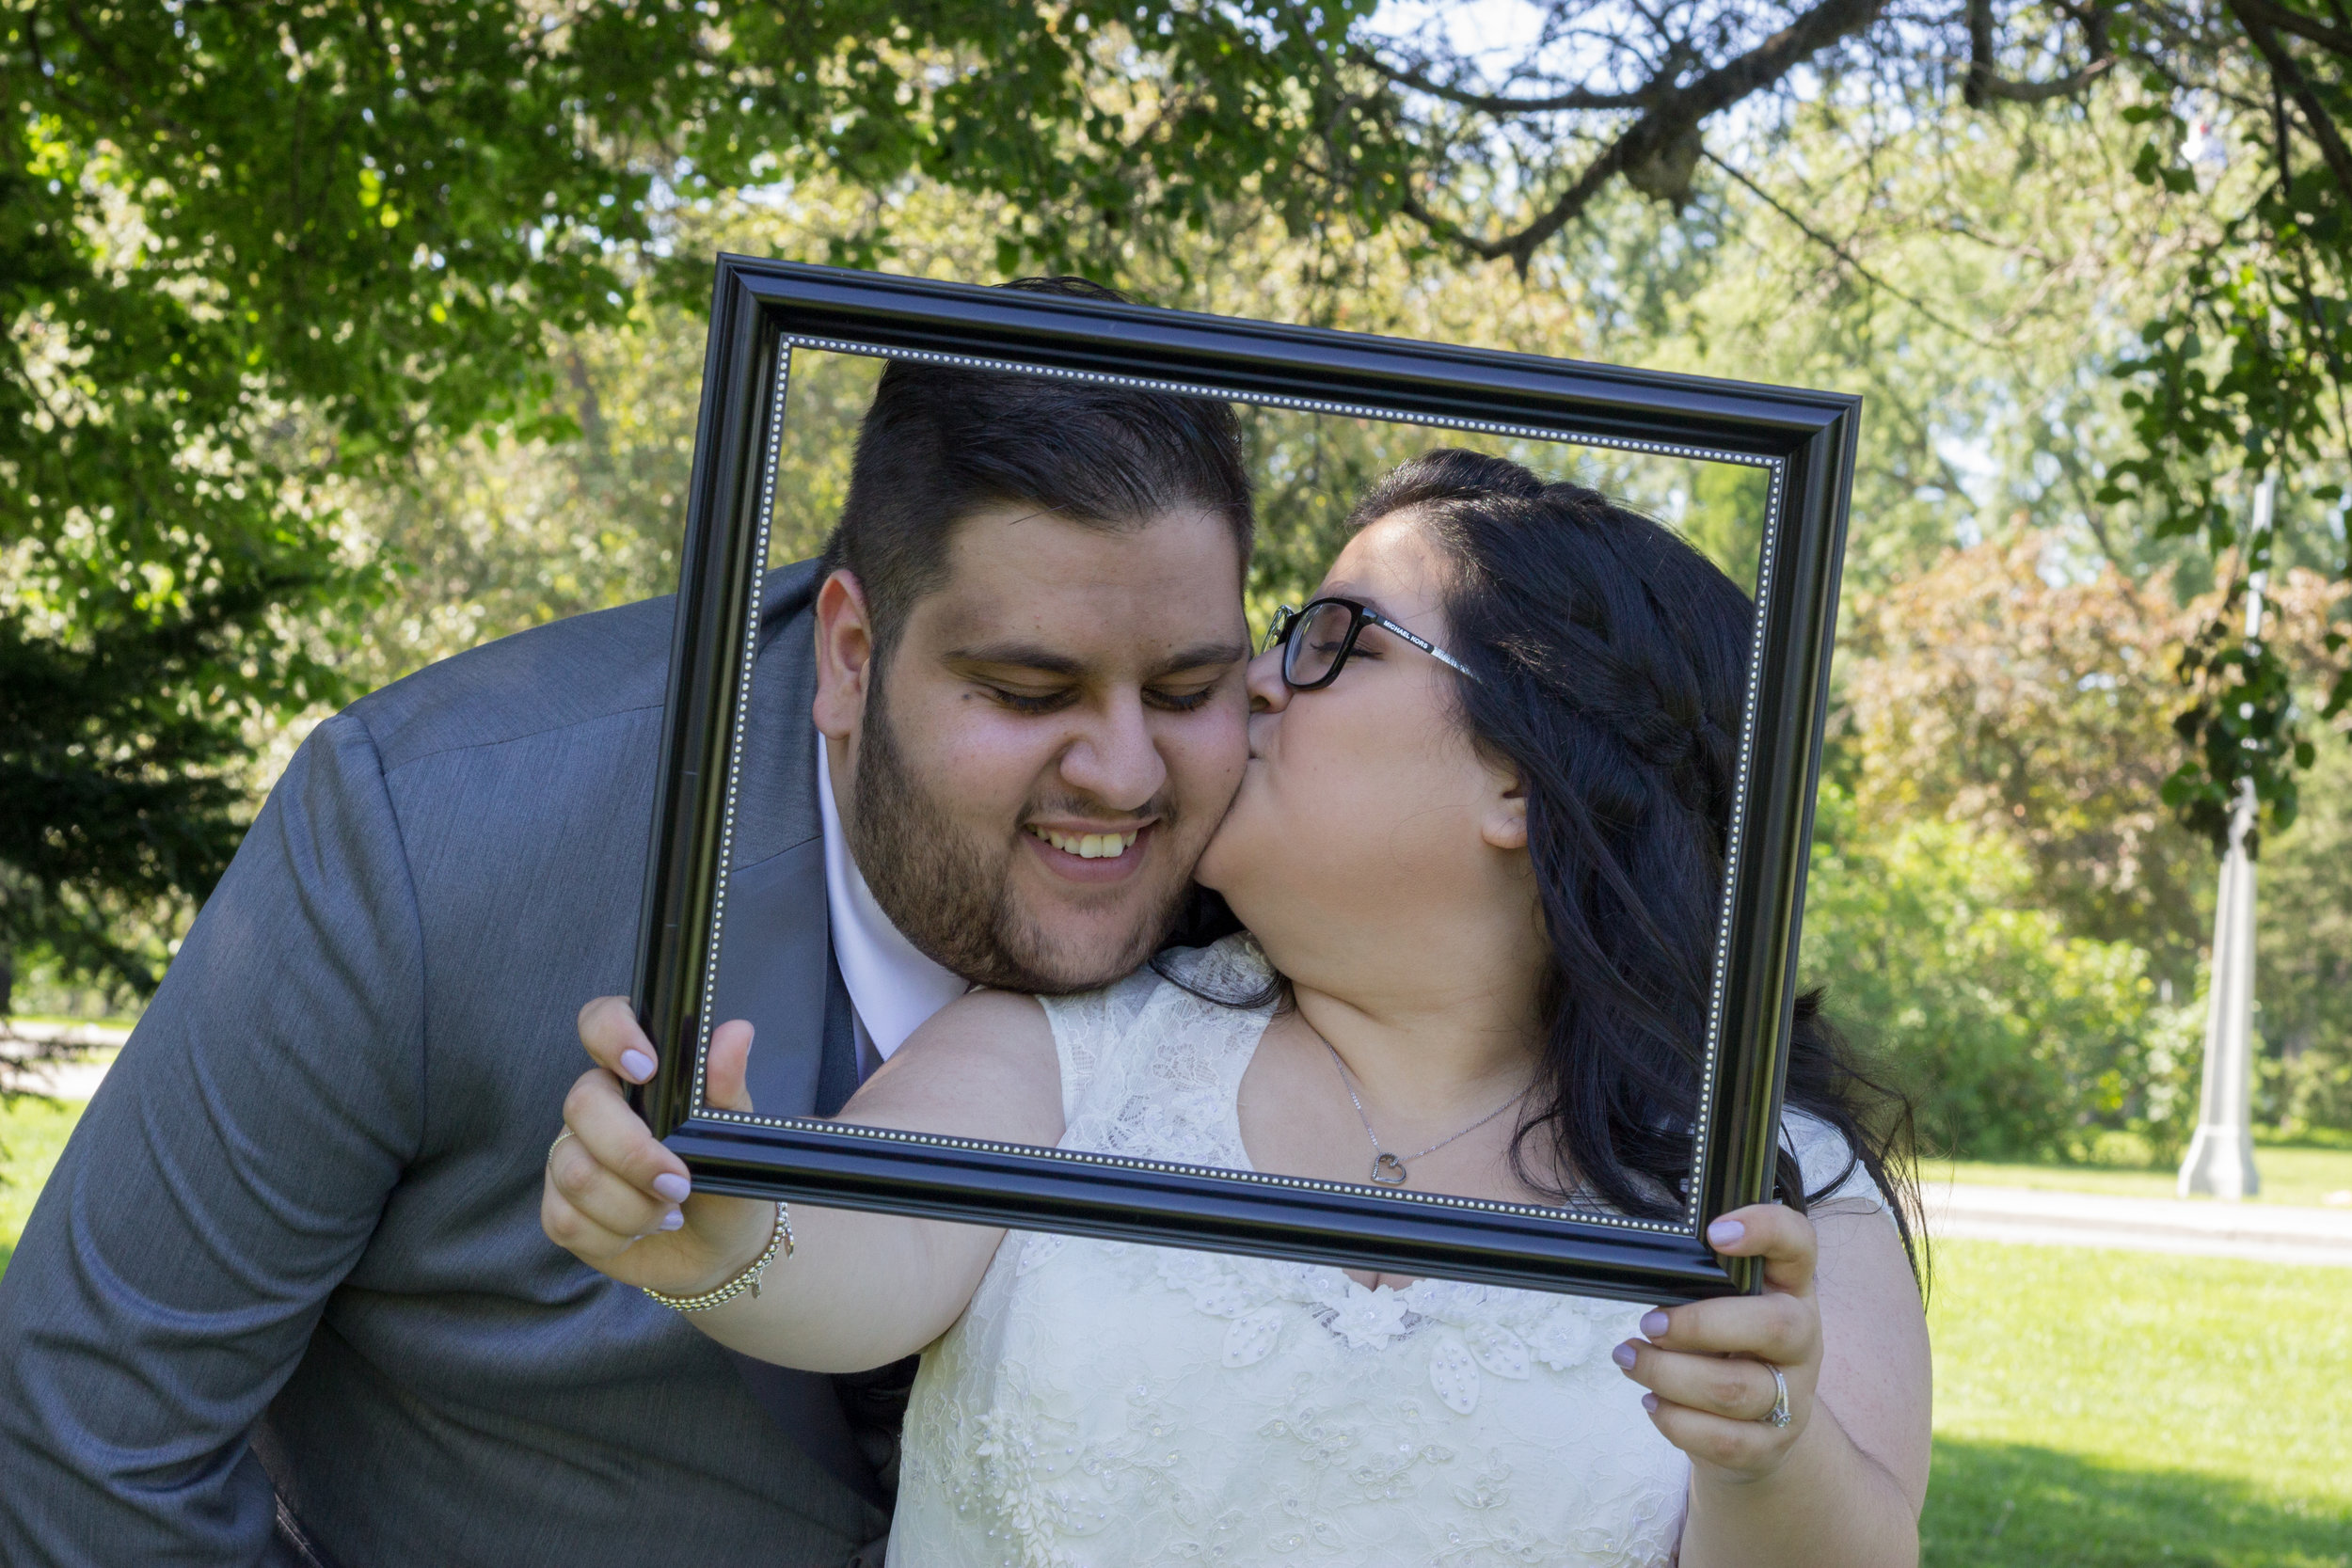 wedding_photo frame.jpg